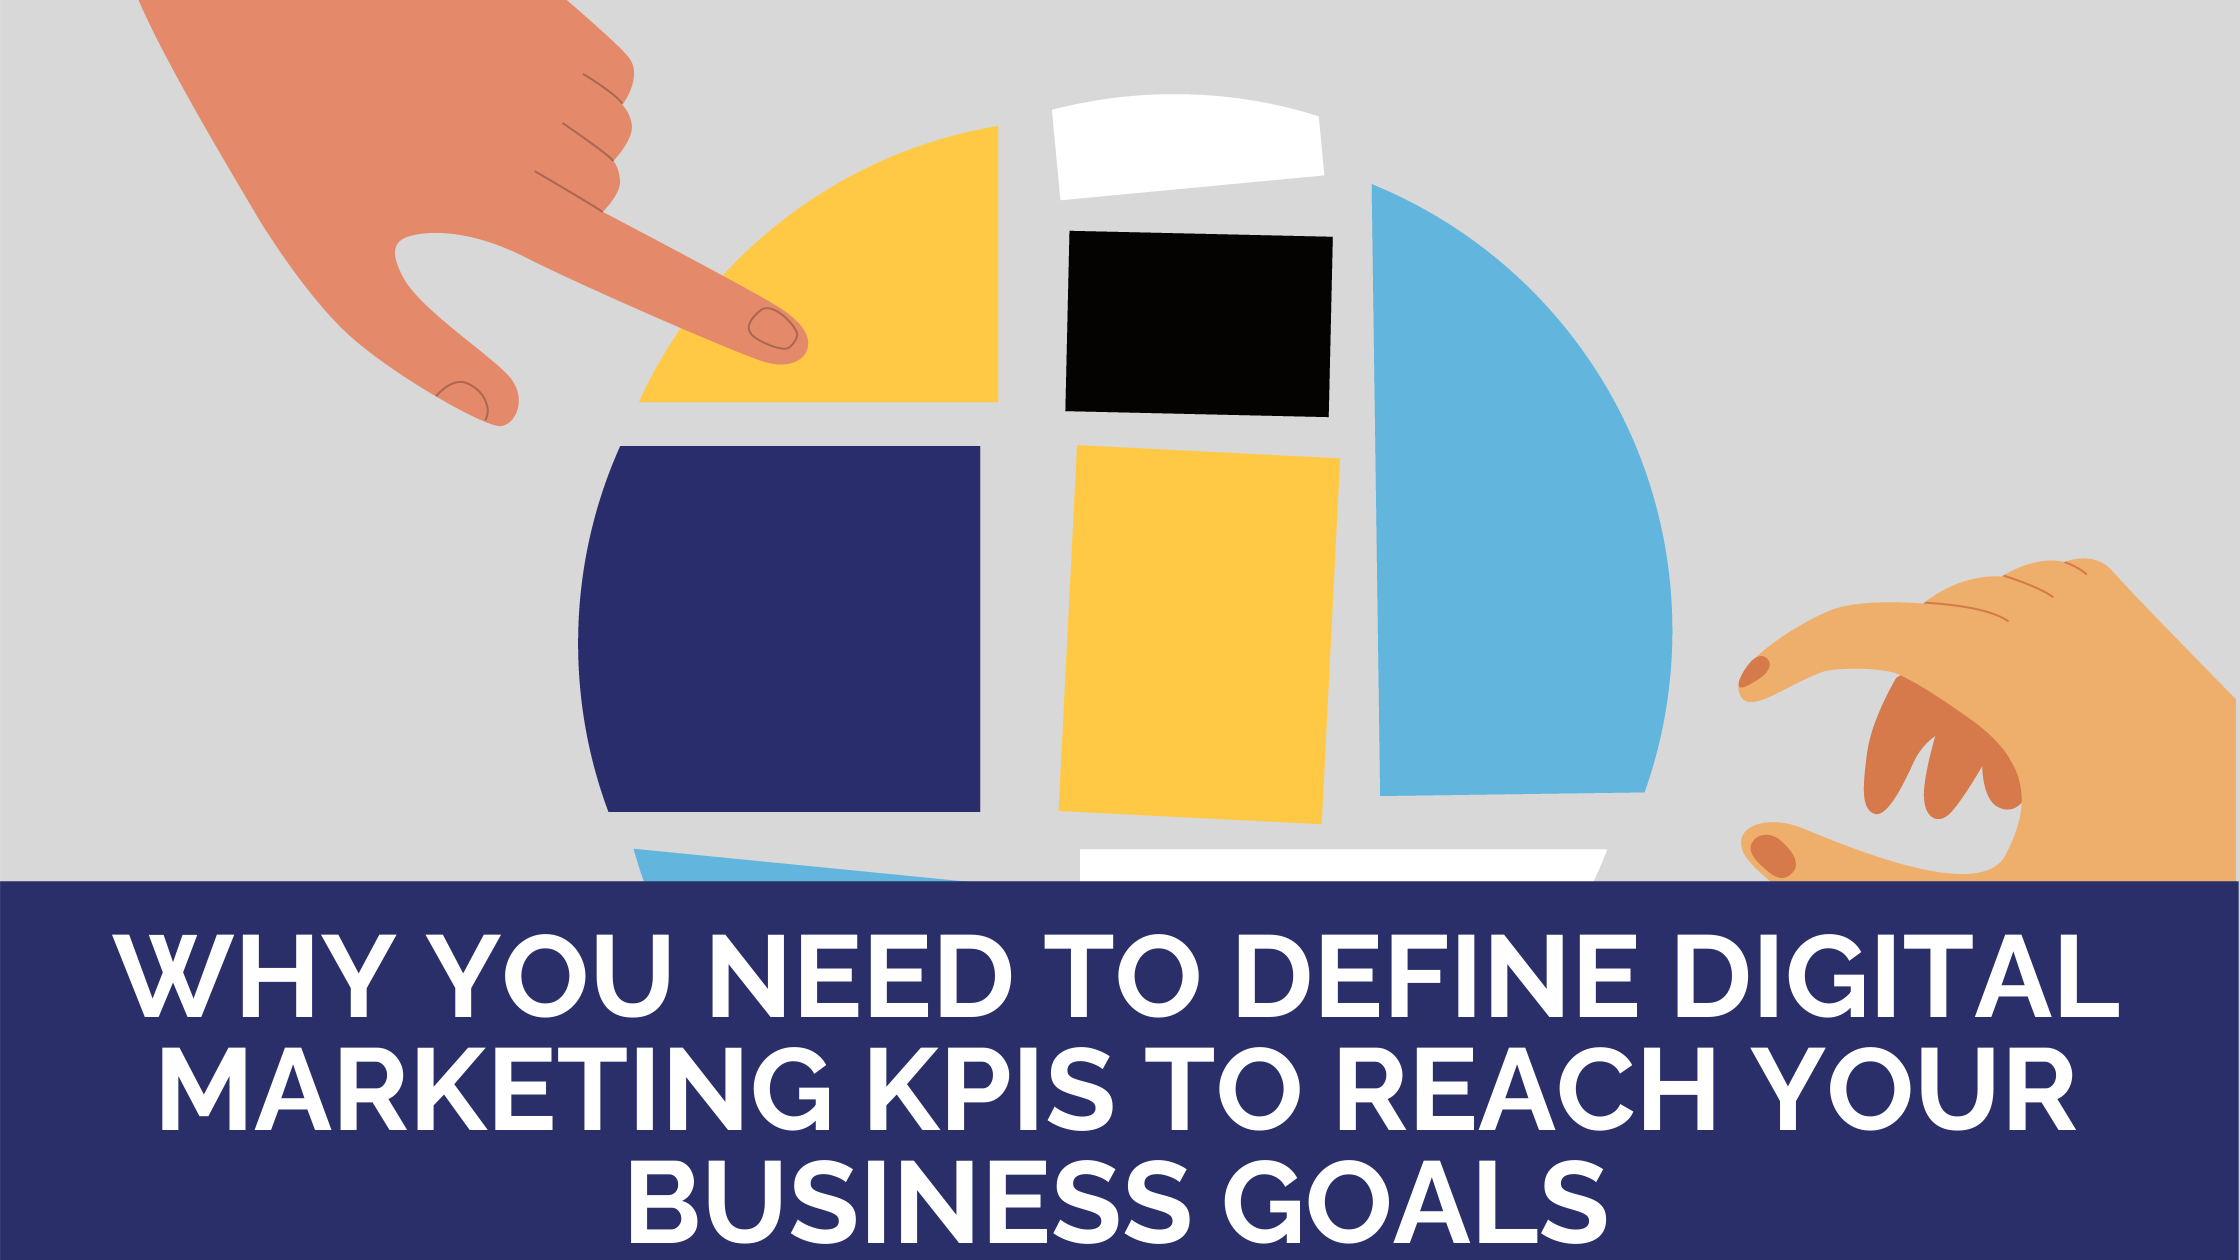 Why you need to define digital marketing KPIs to reach your business goals